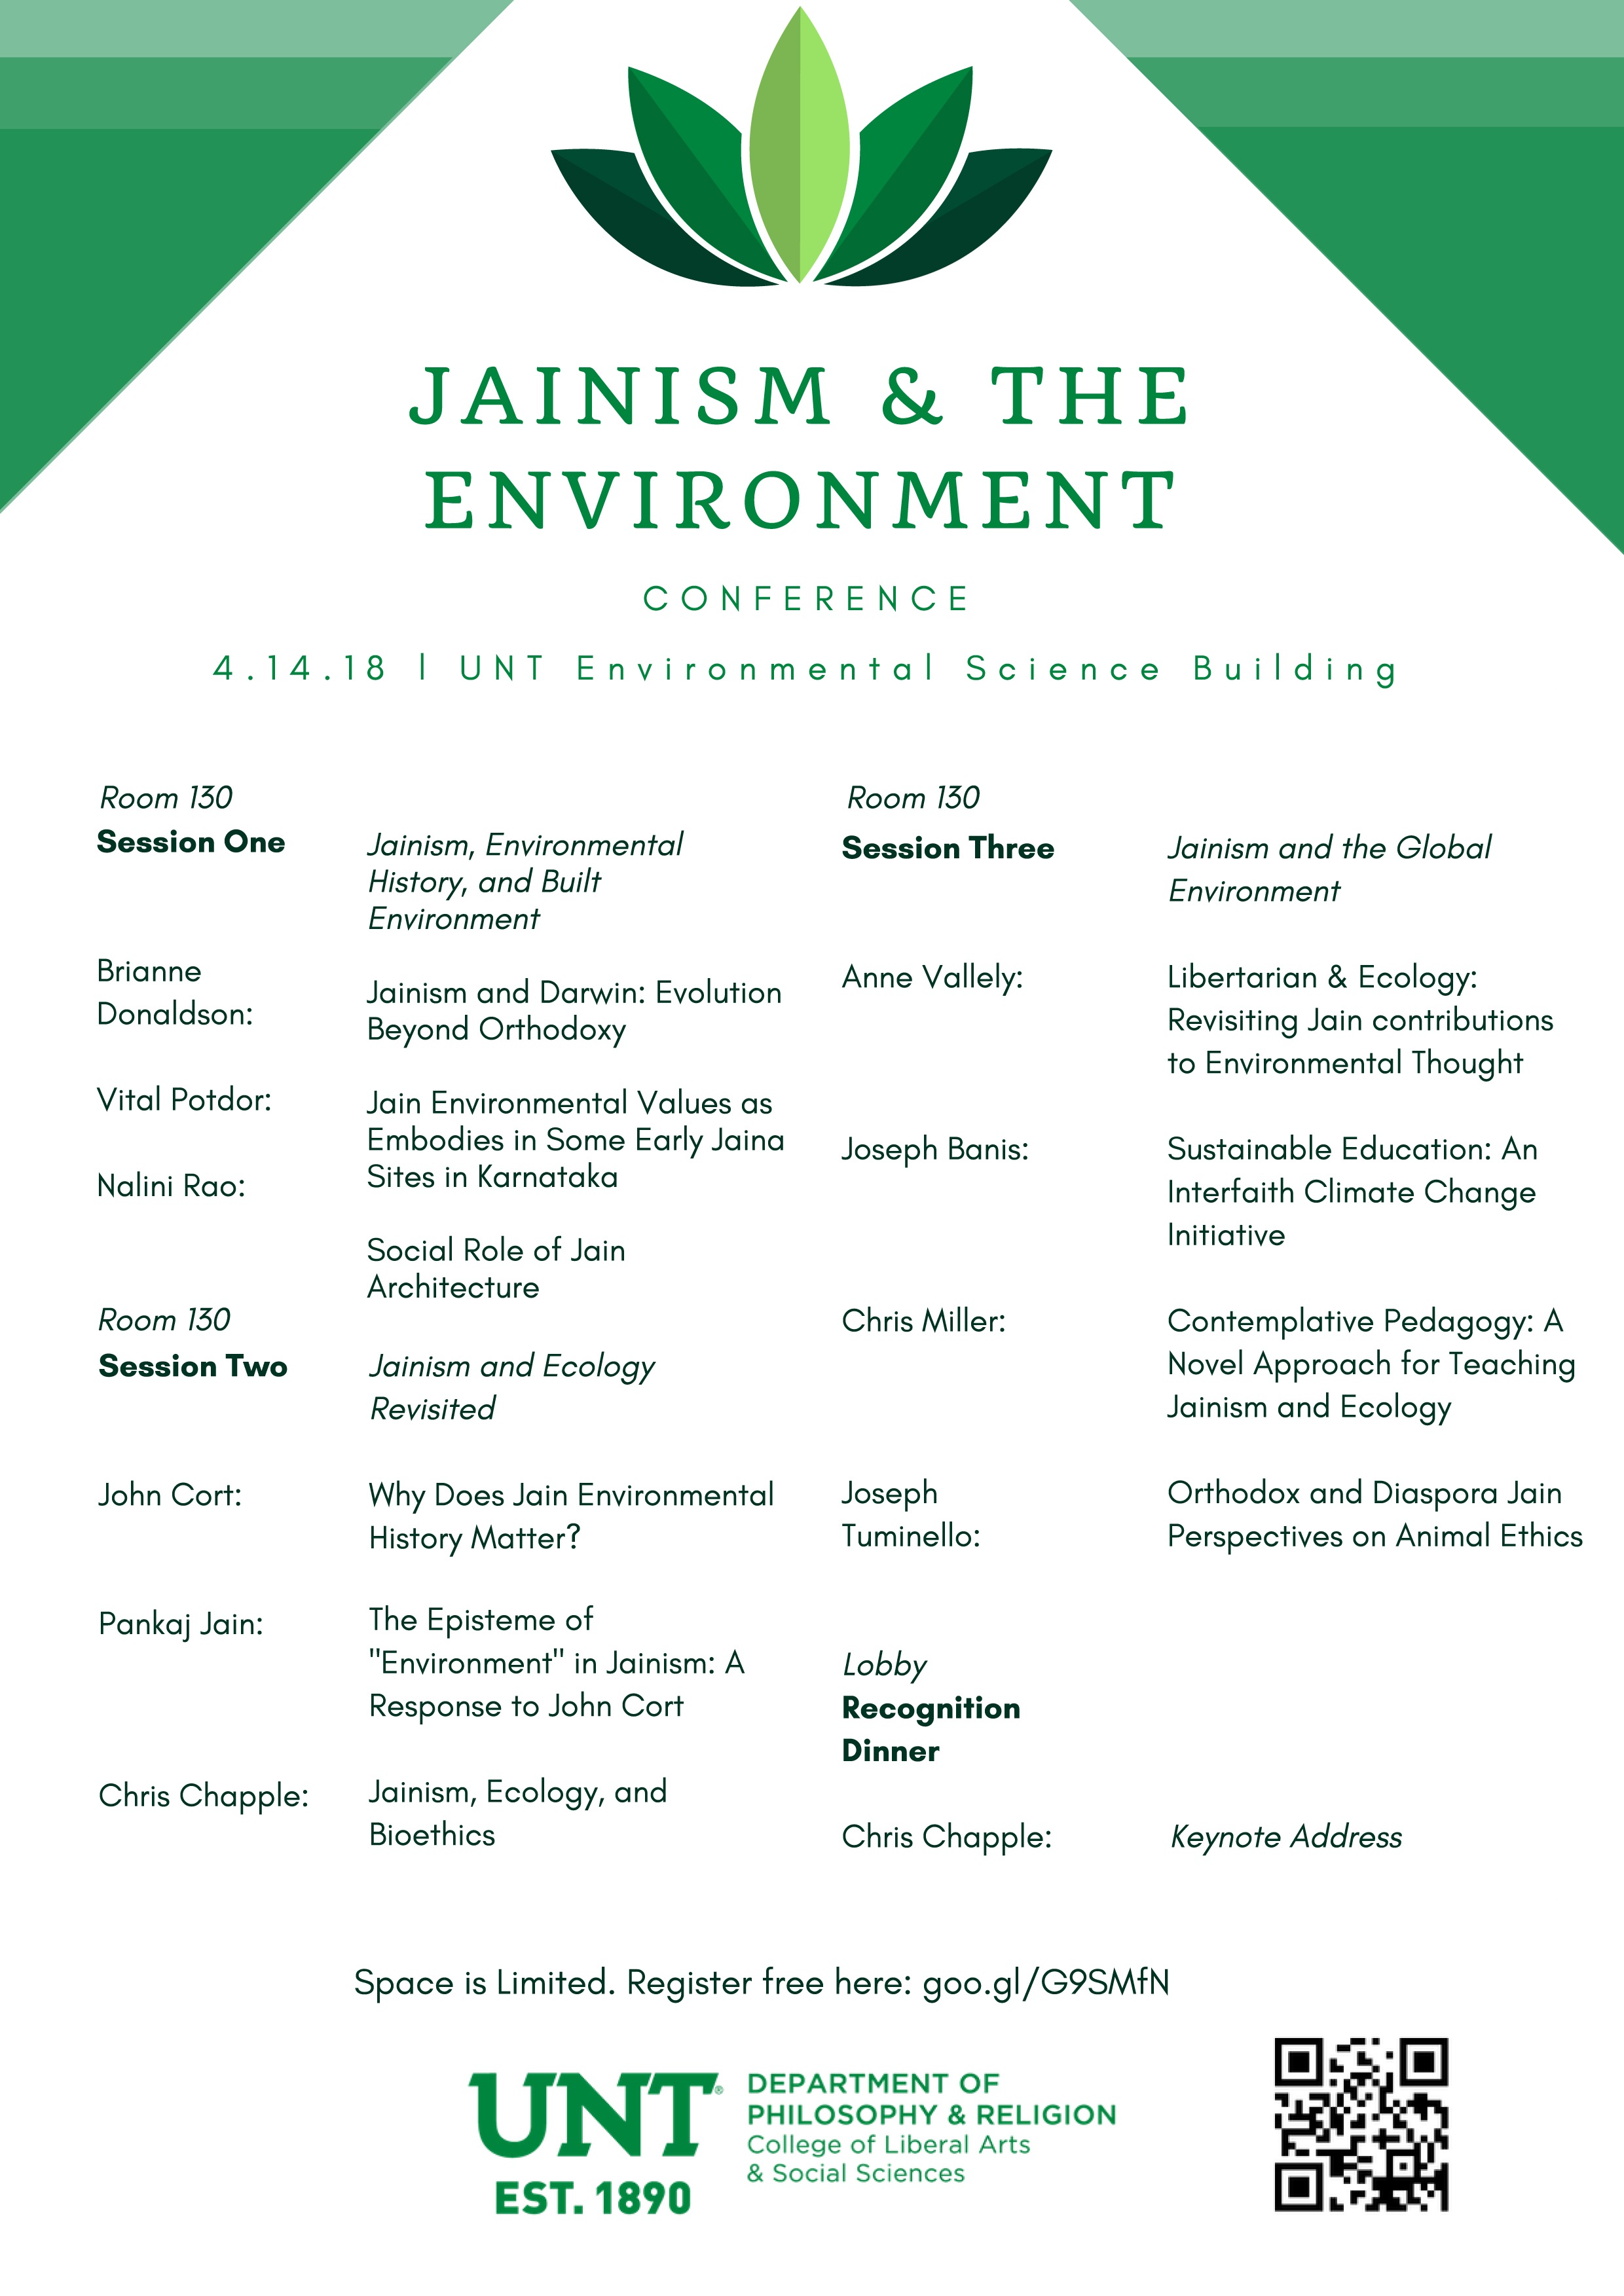 Jainism and the Environment